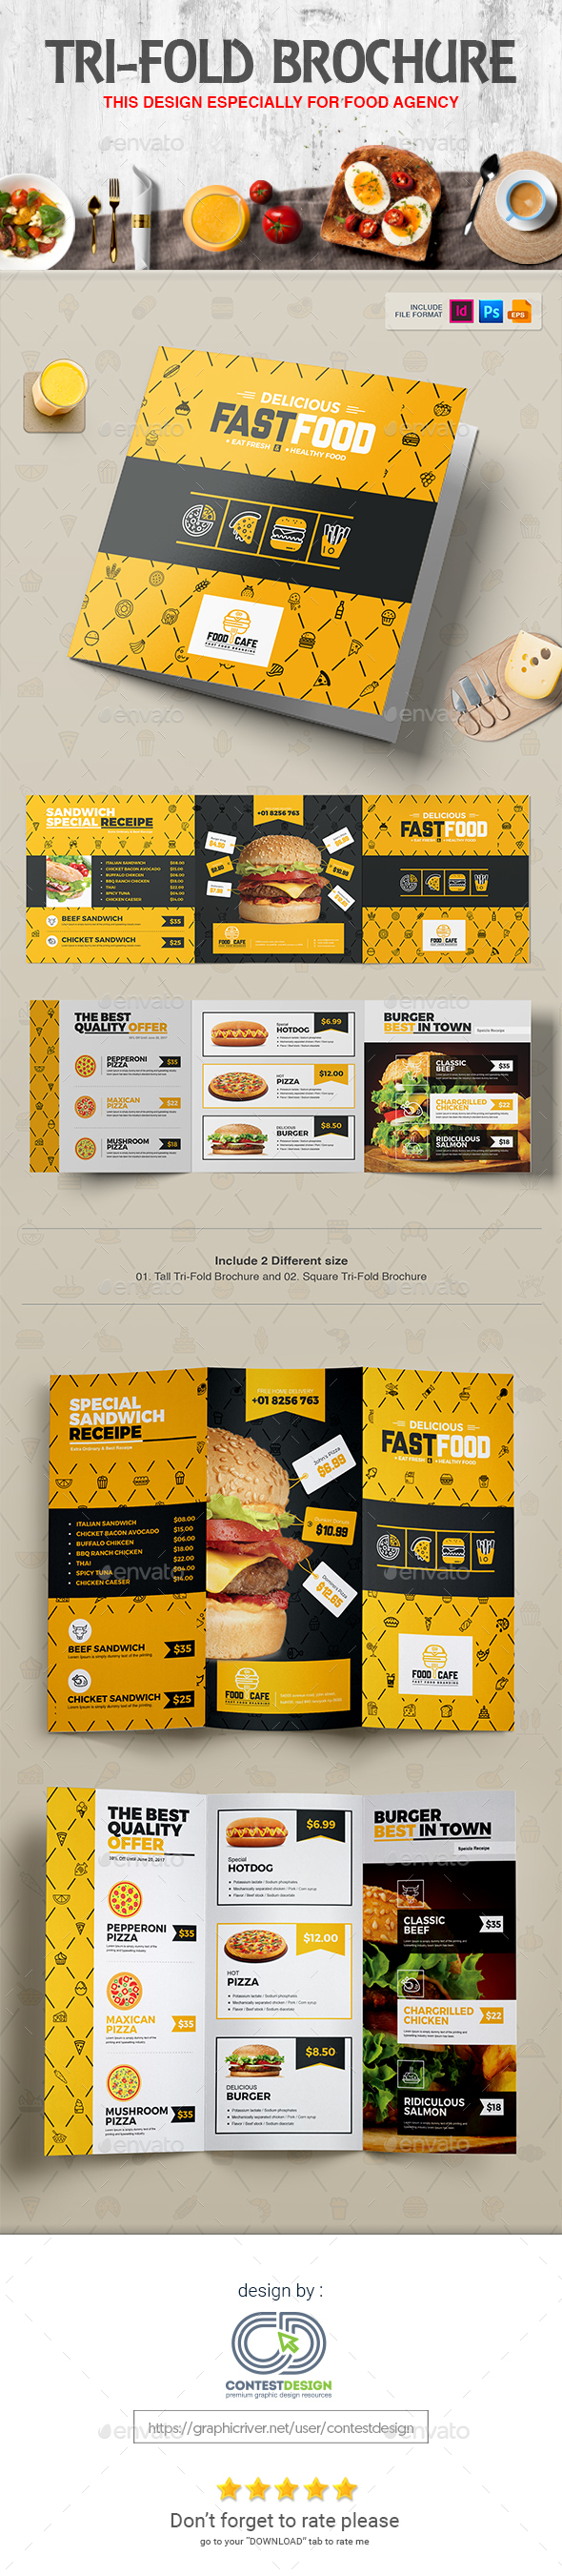 Tri-Fold Brochure (Square & Tall) Design Template for Fast Food ...